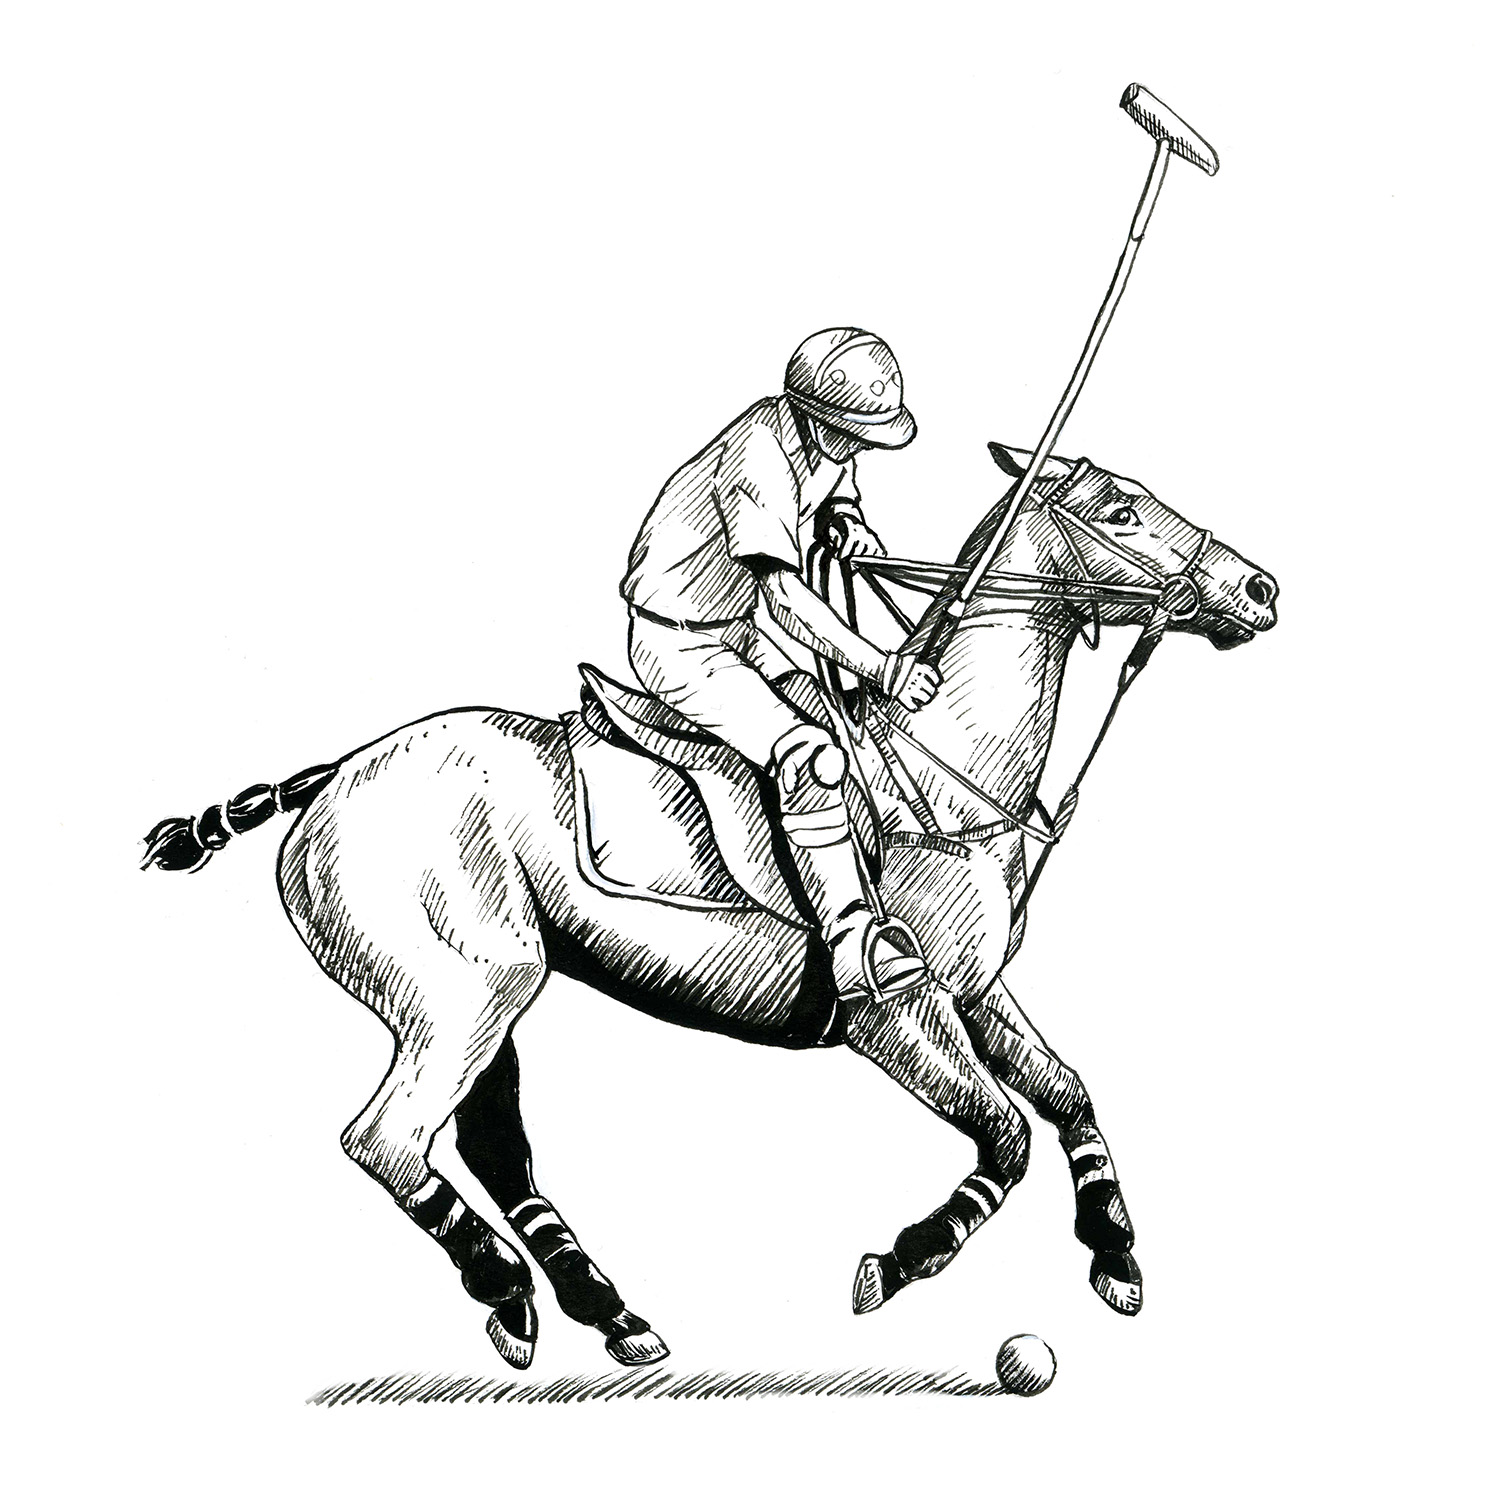 Basic polo shots - Offside backhand